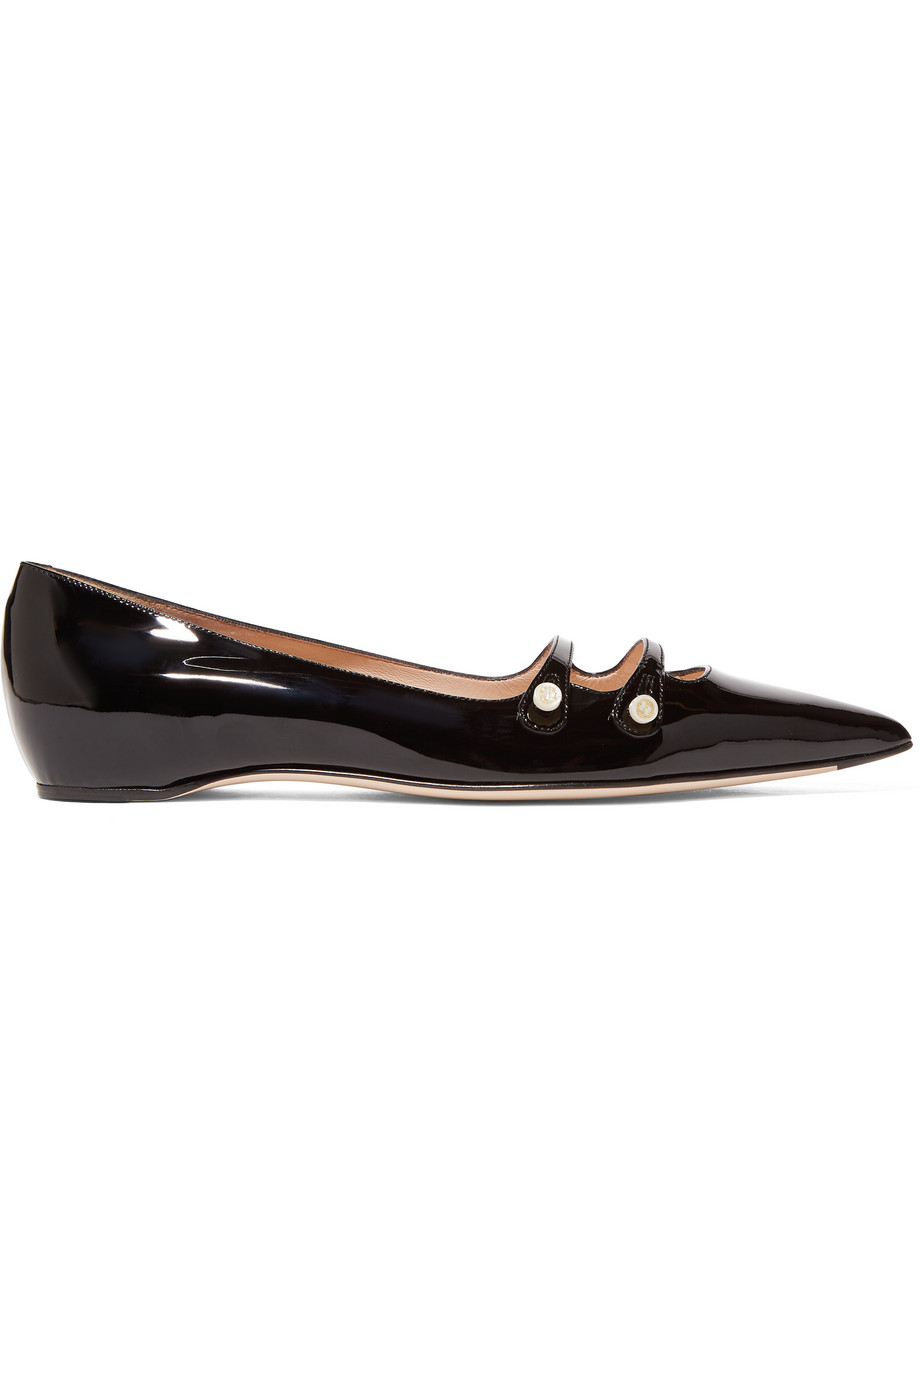 Gucci Patent-Leather Point-Toe Flats, Black, Women's US Size: 10, Size: 40.5